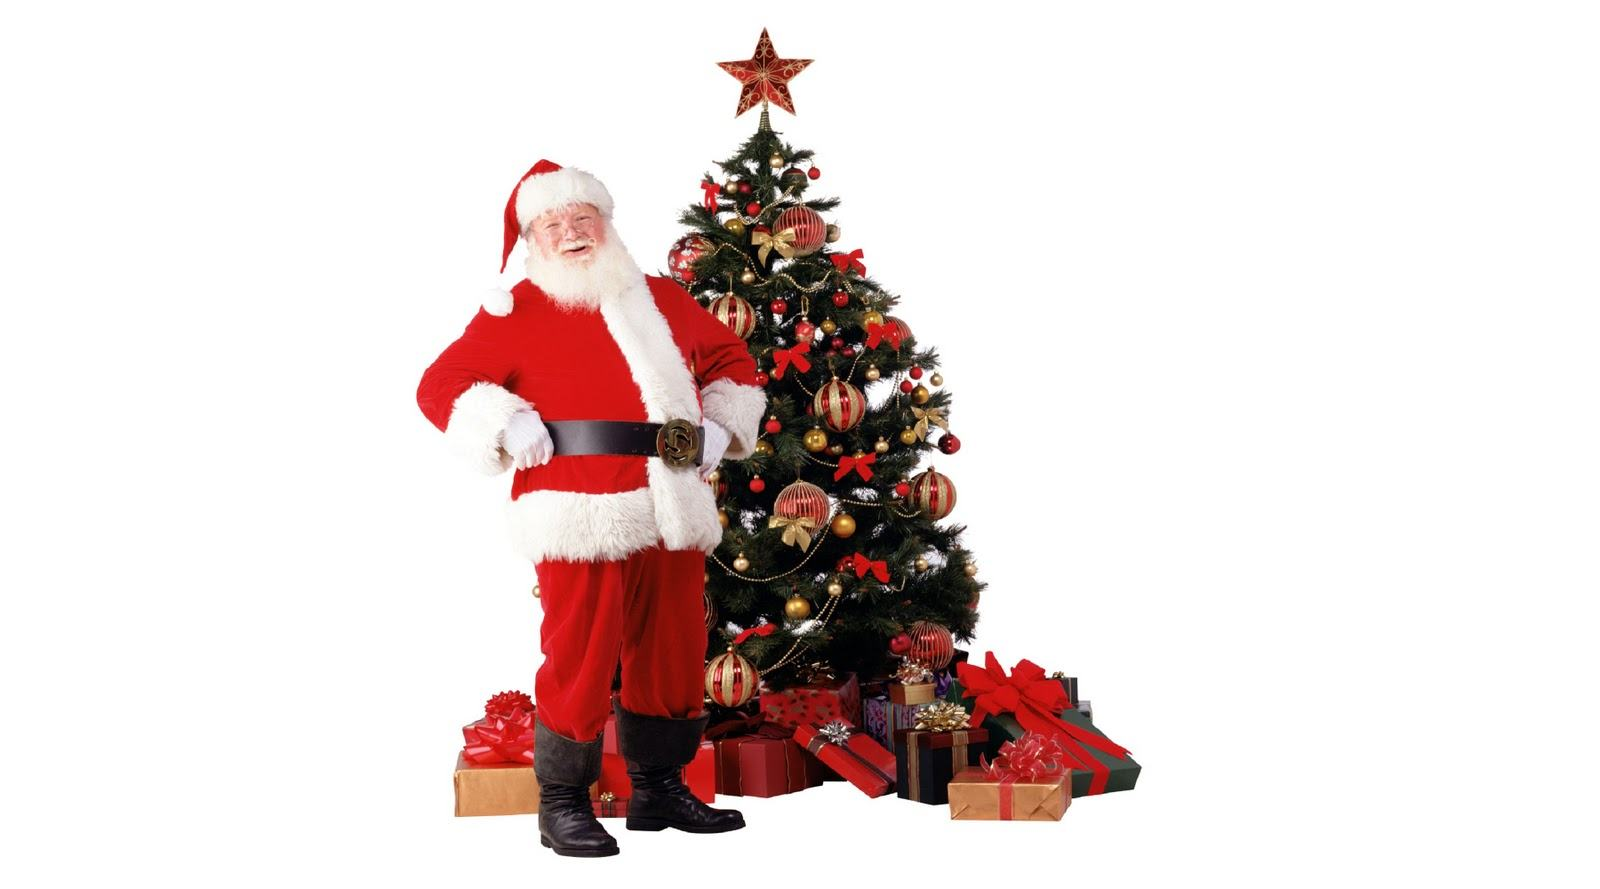 Download Merry Christmas Santa Claus Wallpapers Gallery